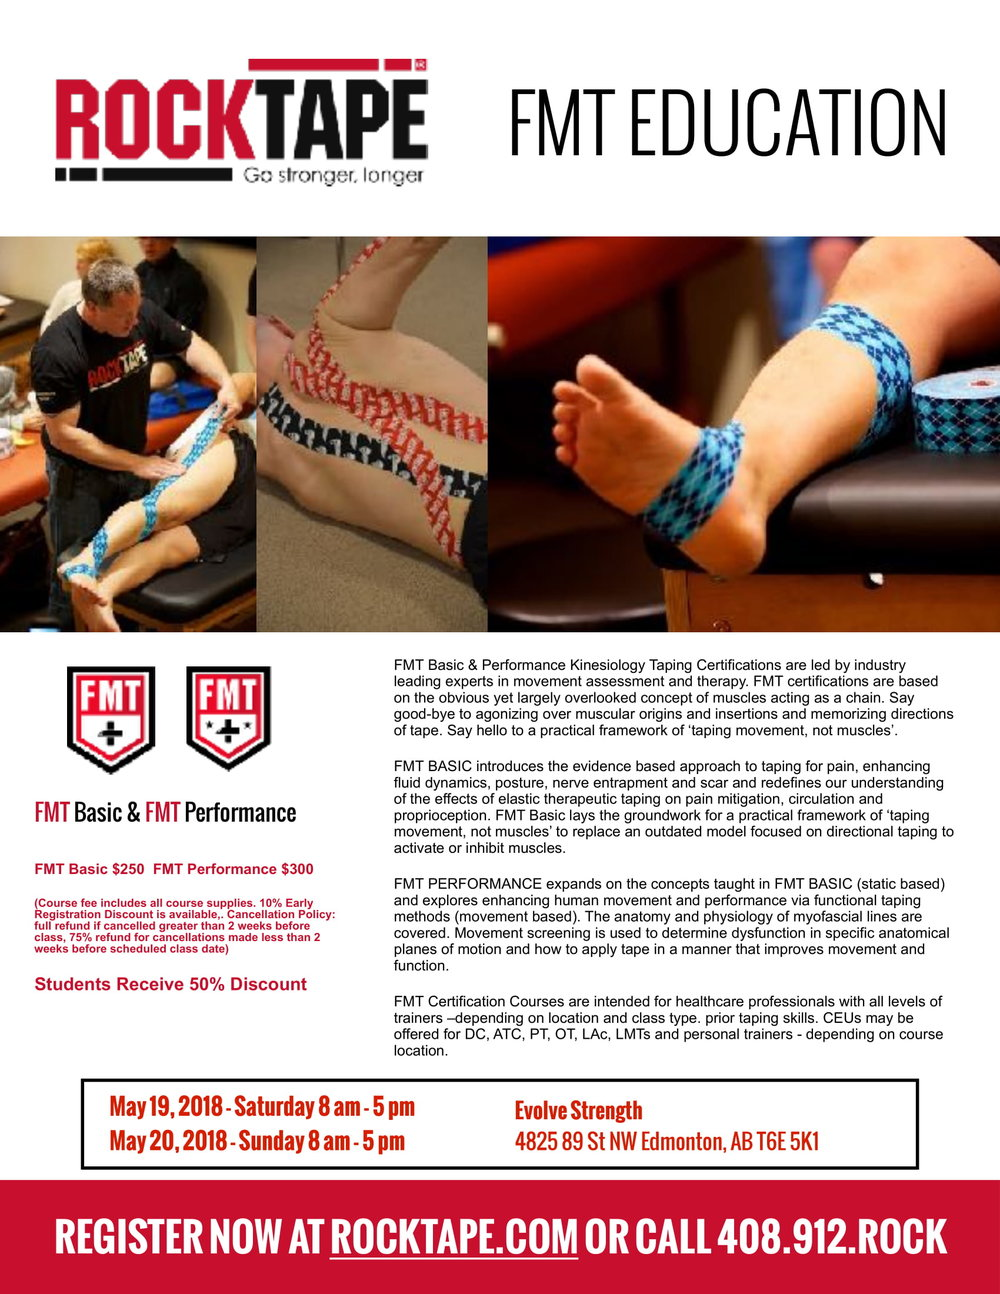 Rocktape Fascial Movement Taping Course Evolve